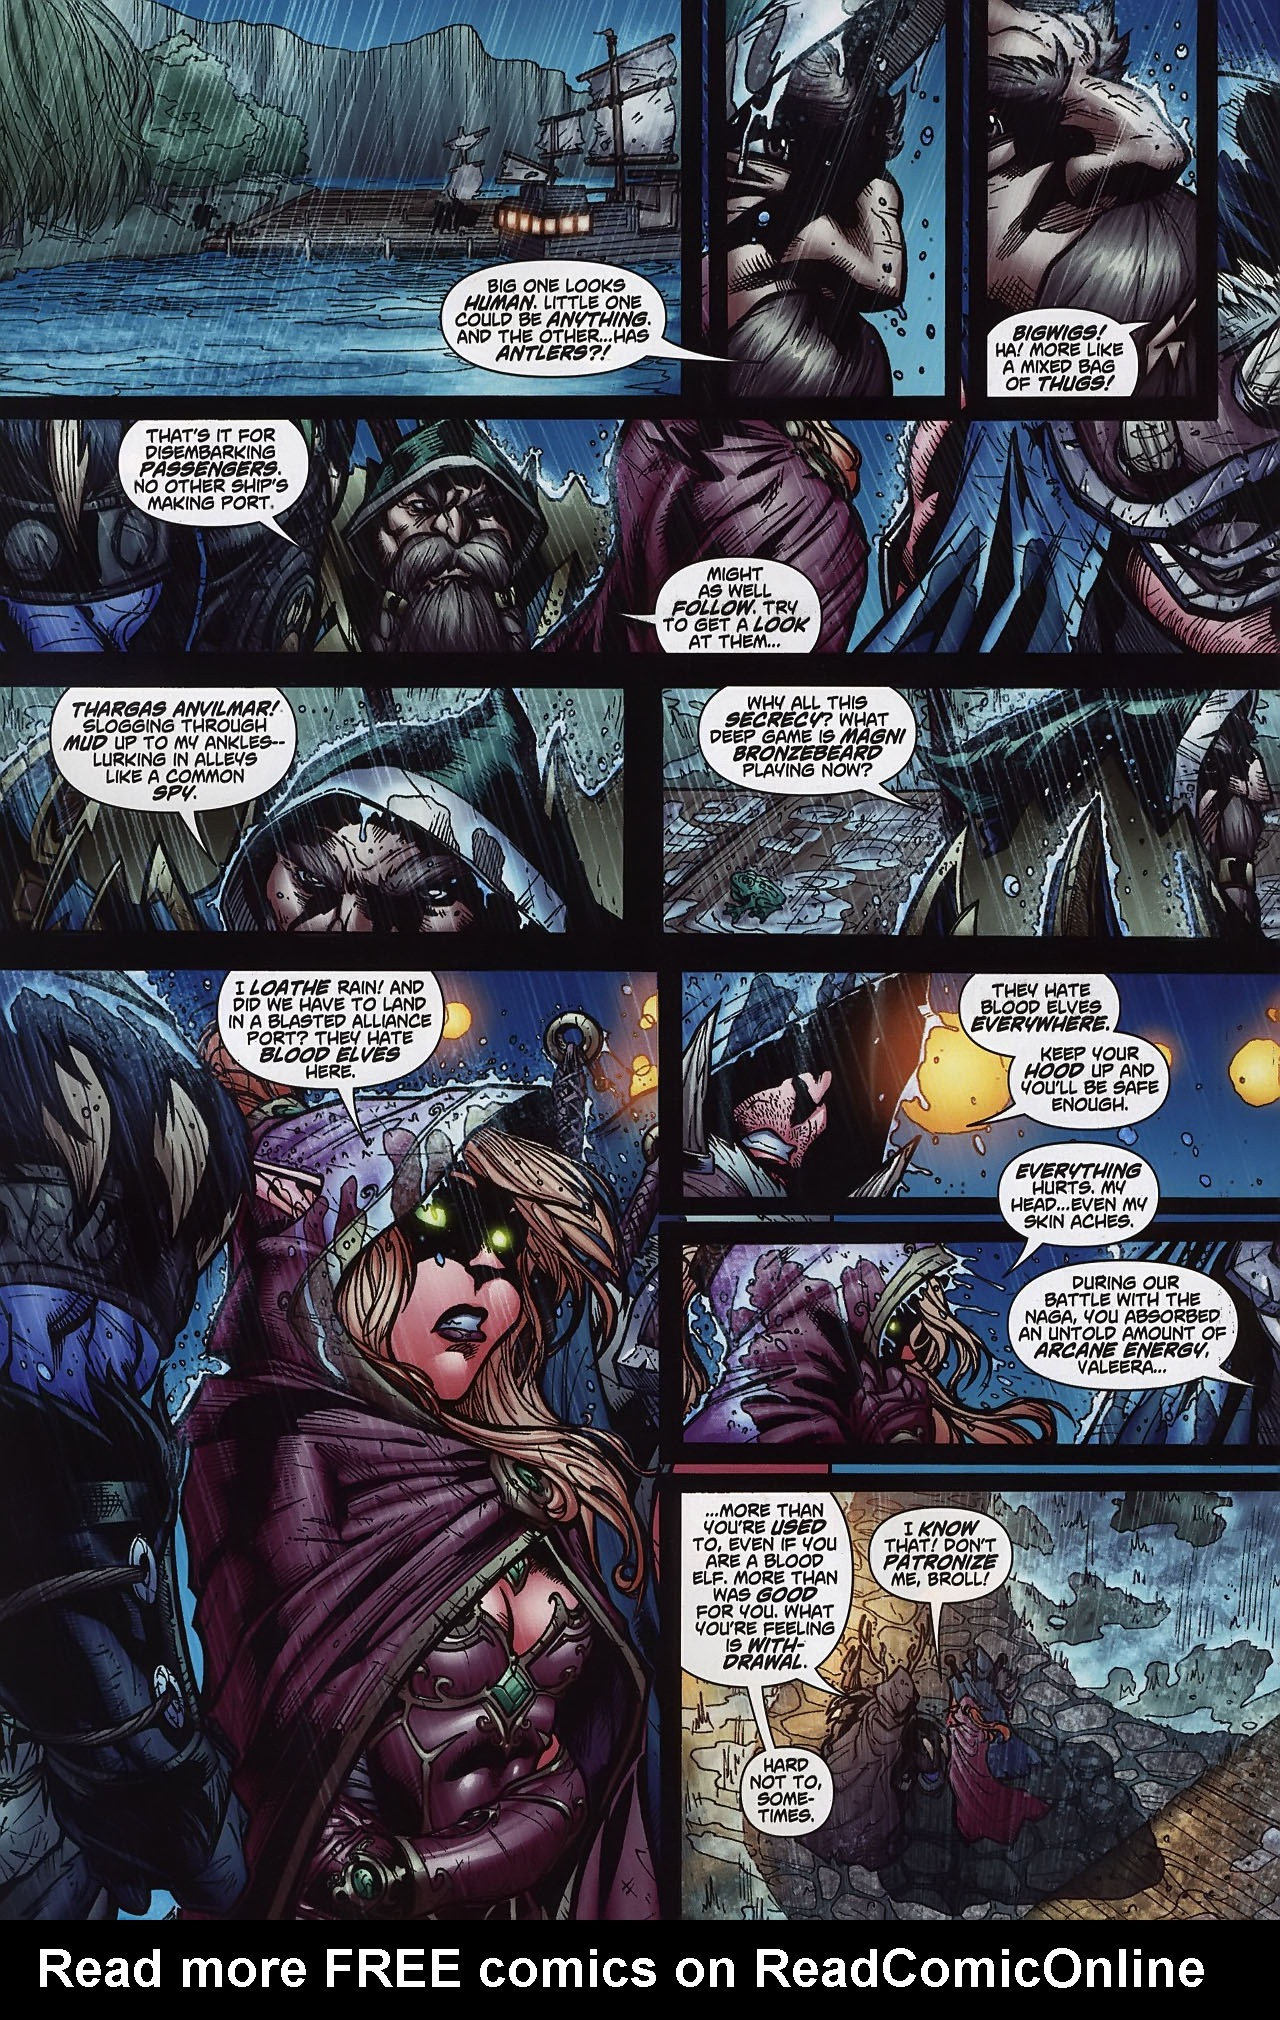 Read online World of Warcraft comic -  Issue #8 - 7